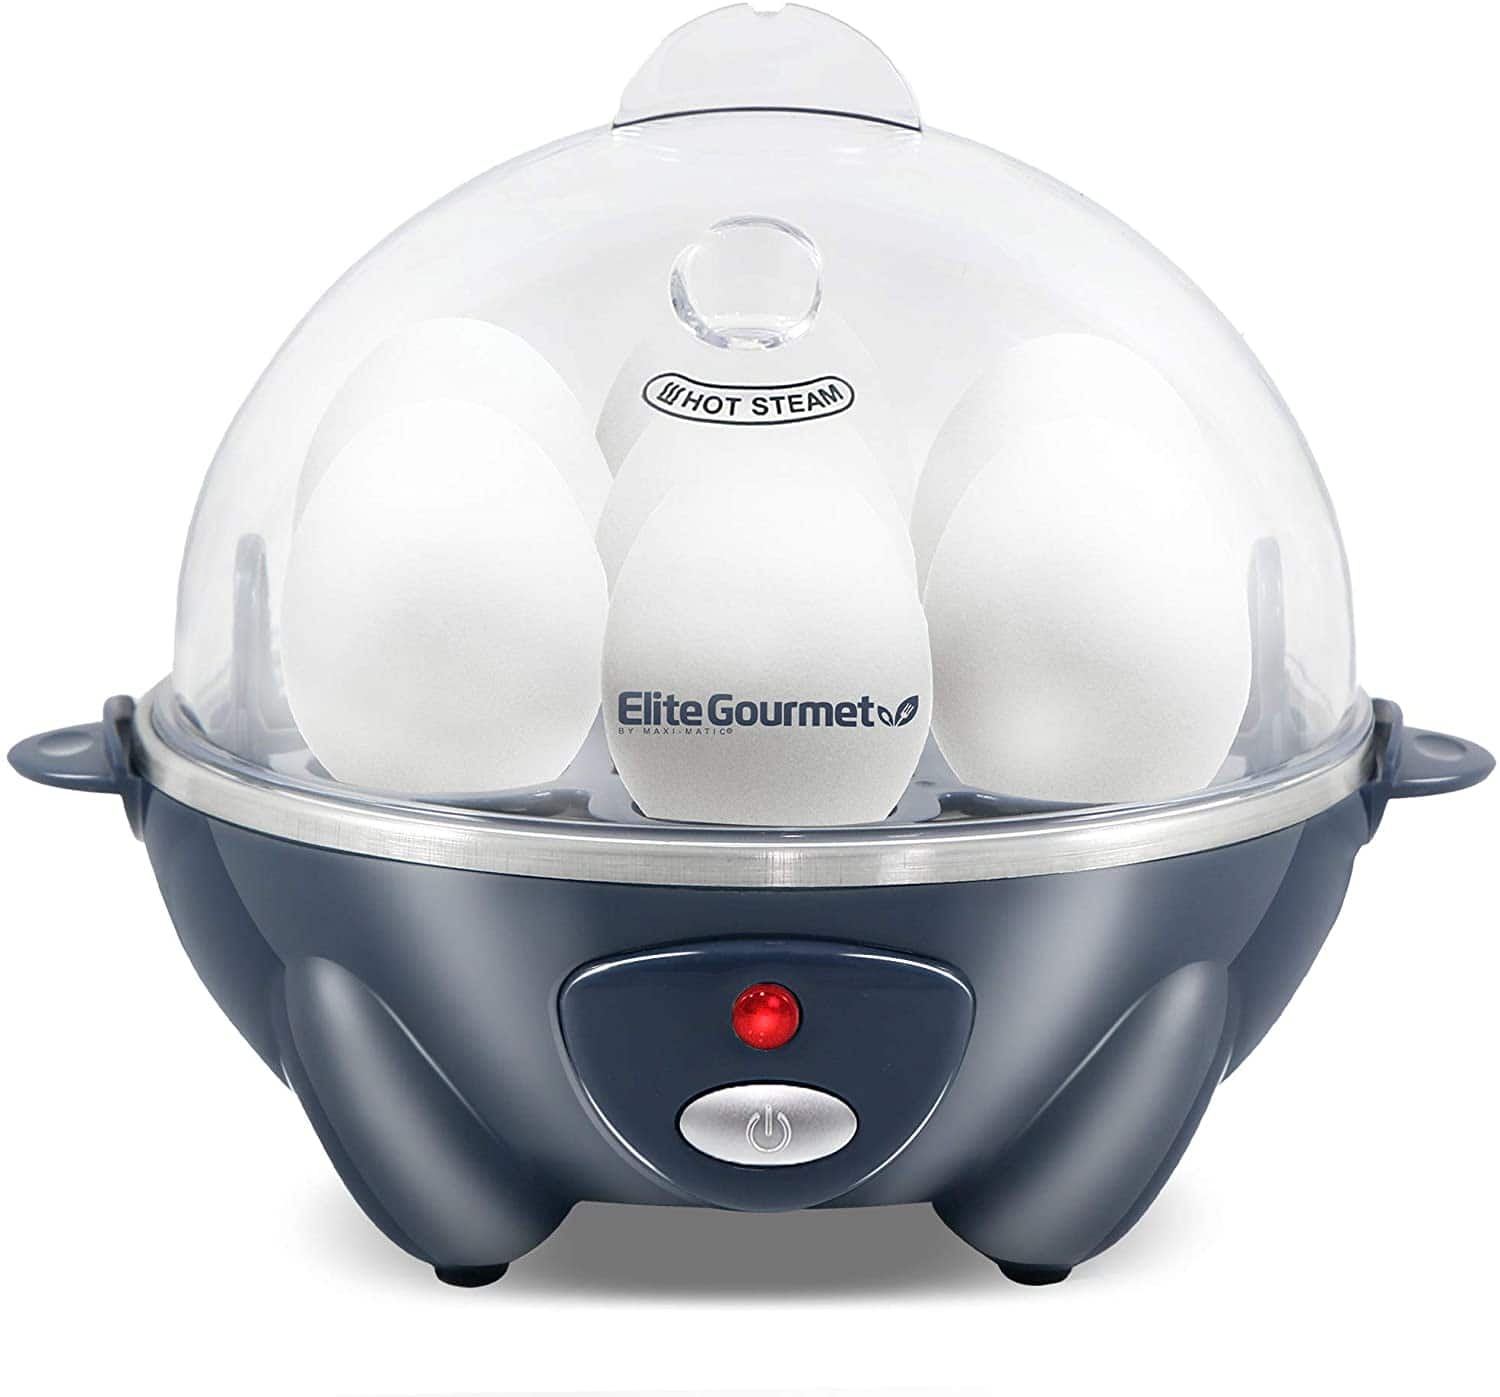 Elite Gourmet 7-Egg Easy Electric Poacher (Grey Blue or Mint)